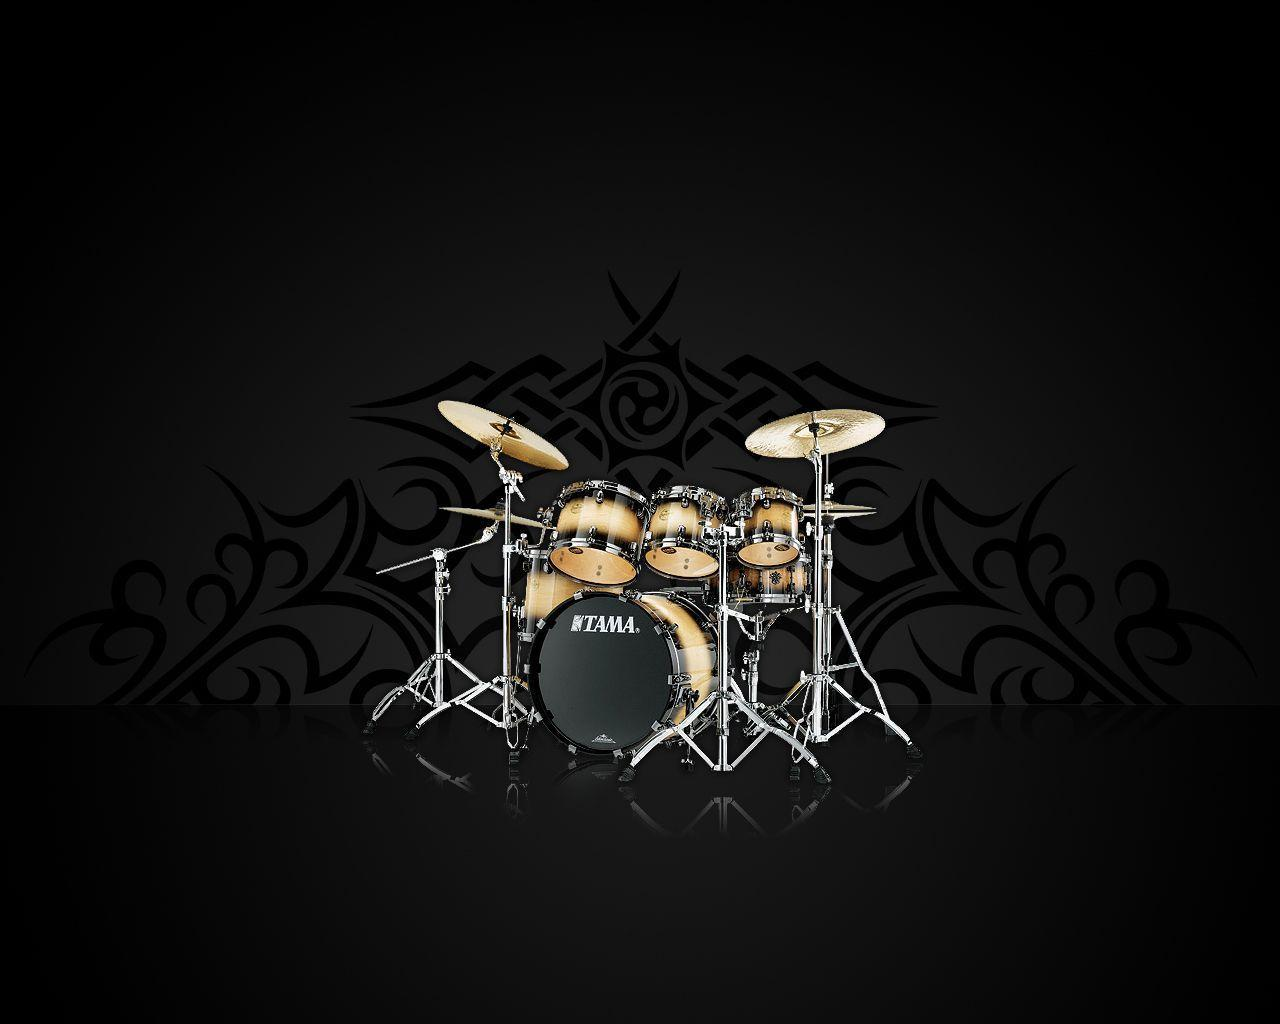 drum wallpaper for computer - photo #25